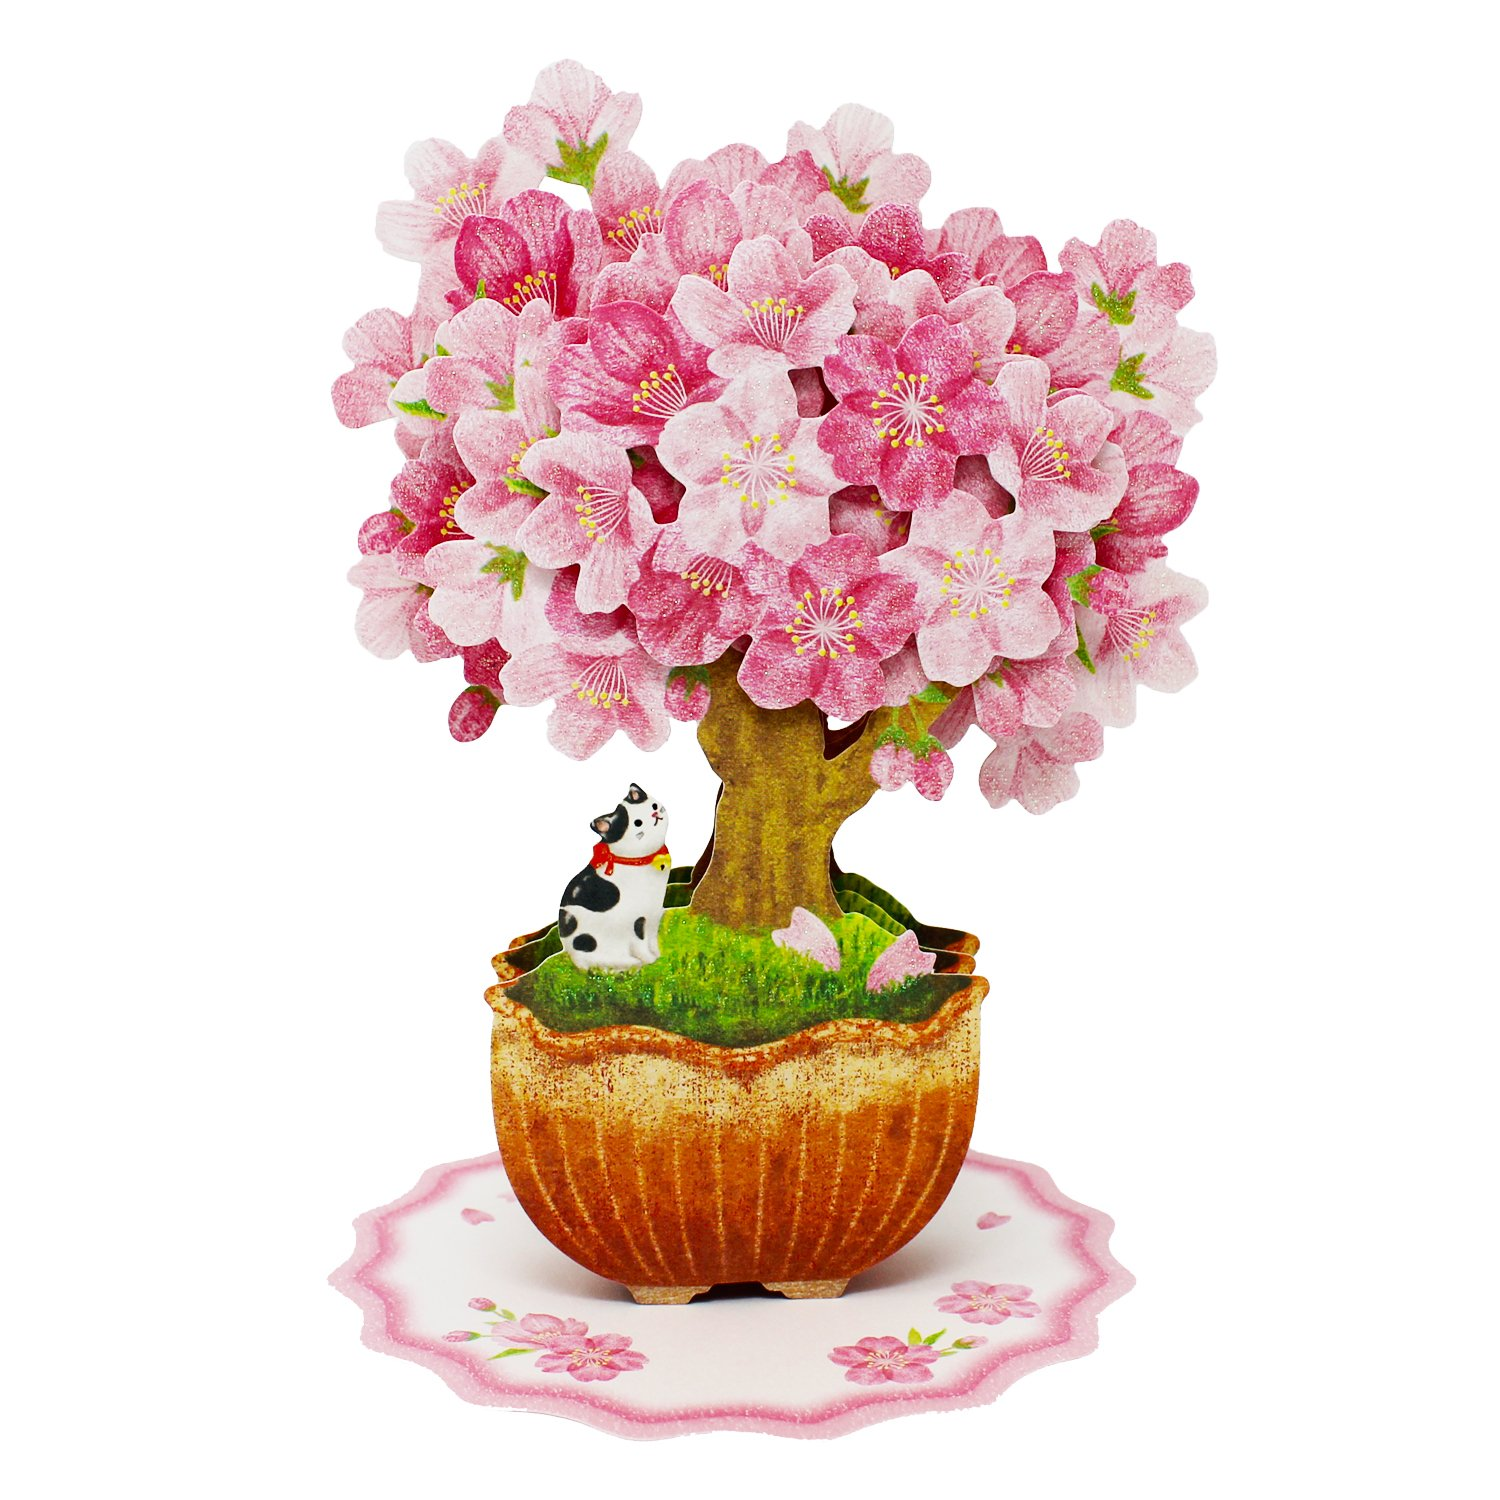 Bonsai Árvore Da Flor De Cereja com Gato Multipurpose Pop Up Cartão